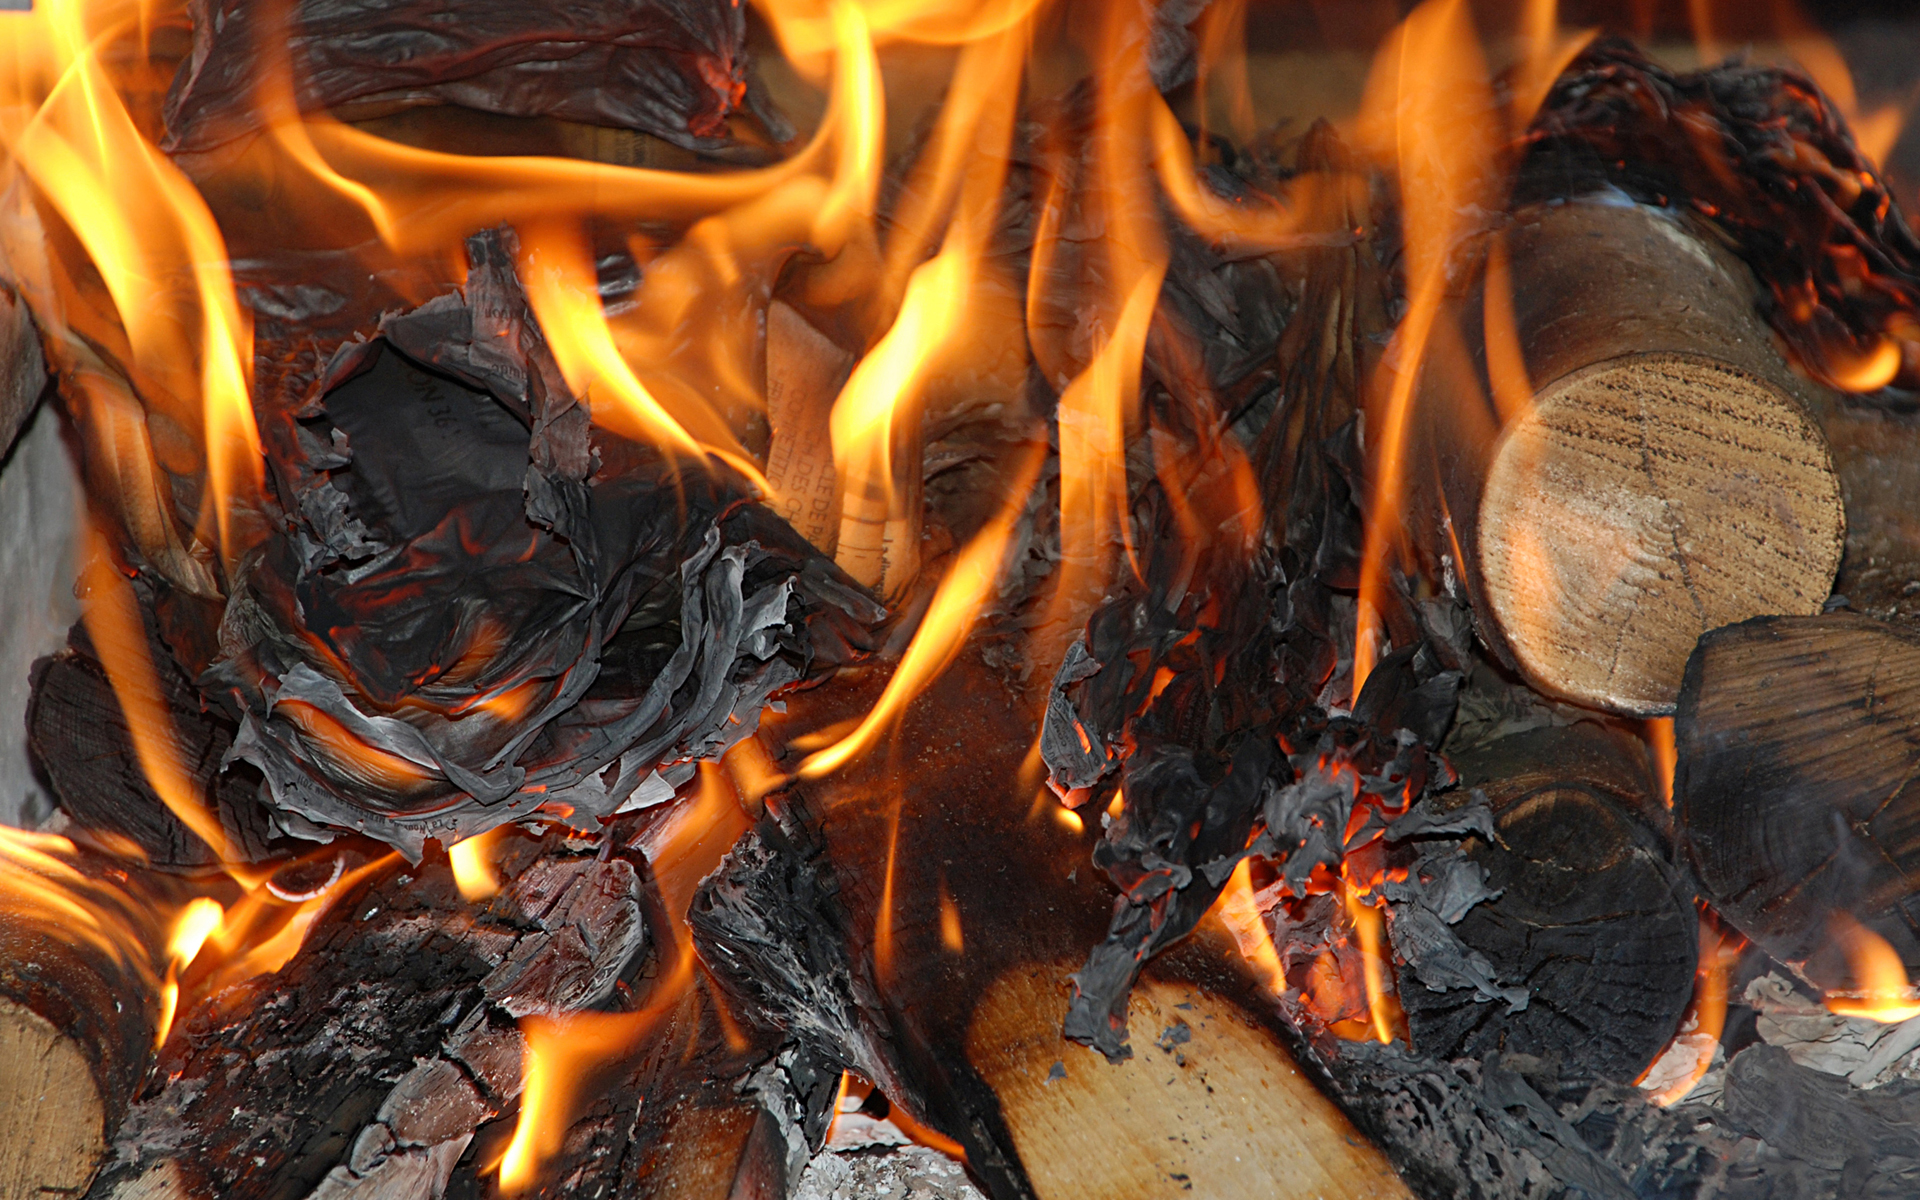 Iphone Book Wallpaper Moril Wood Fire Hd Wallpaper Background Image